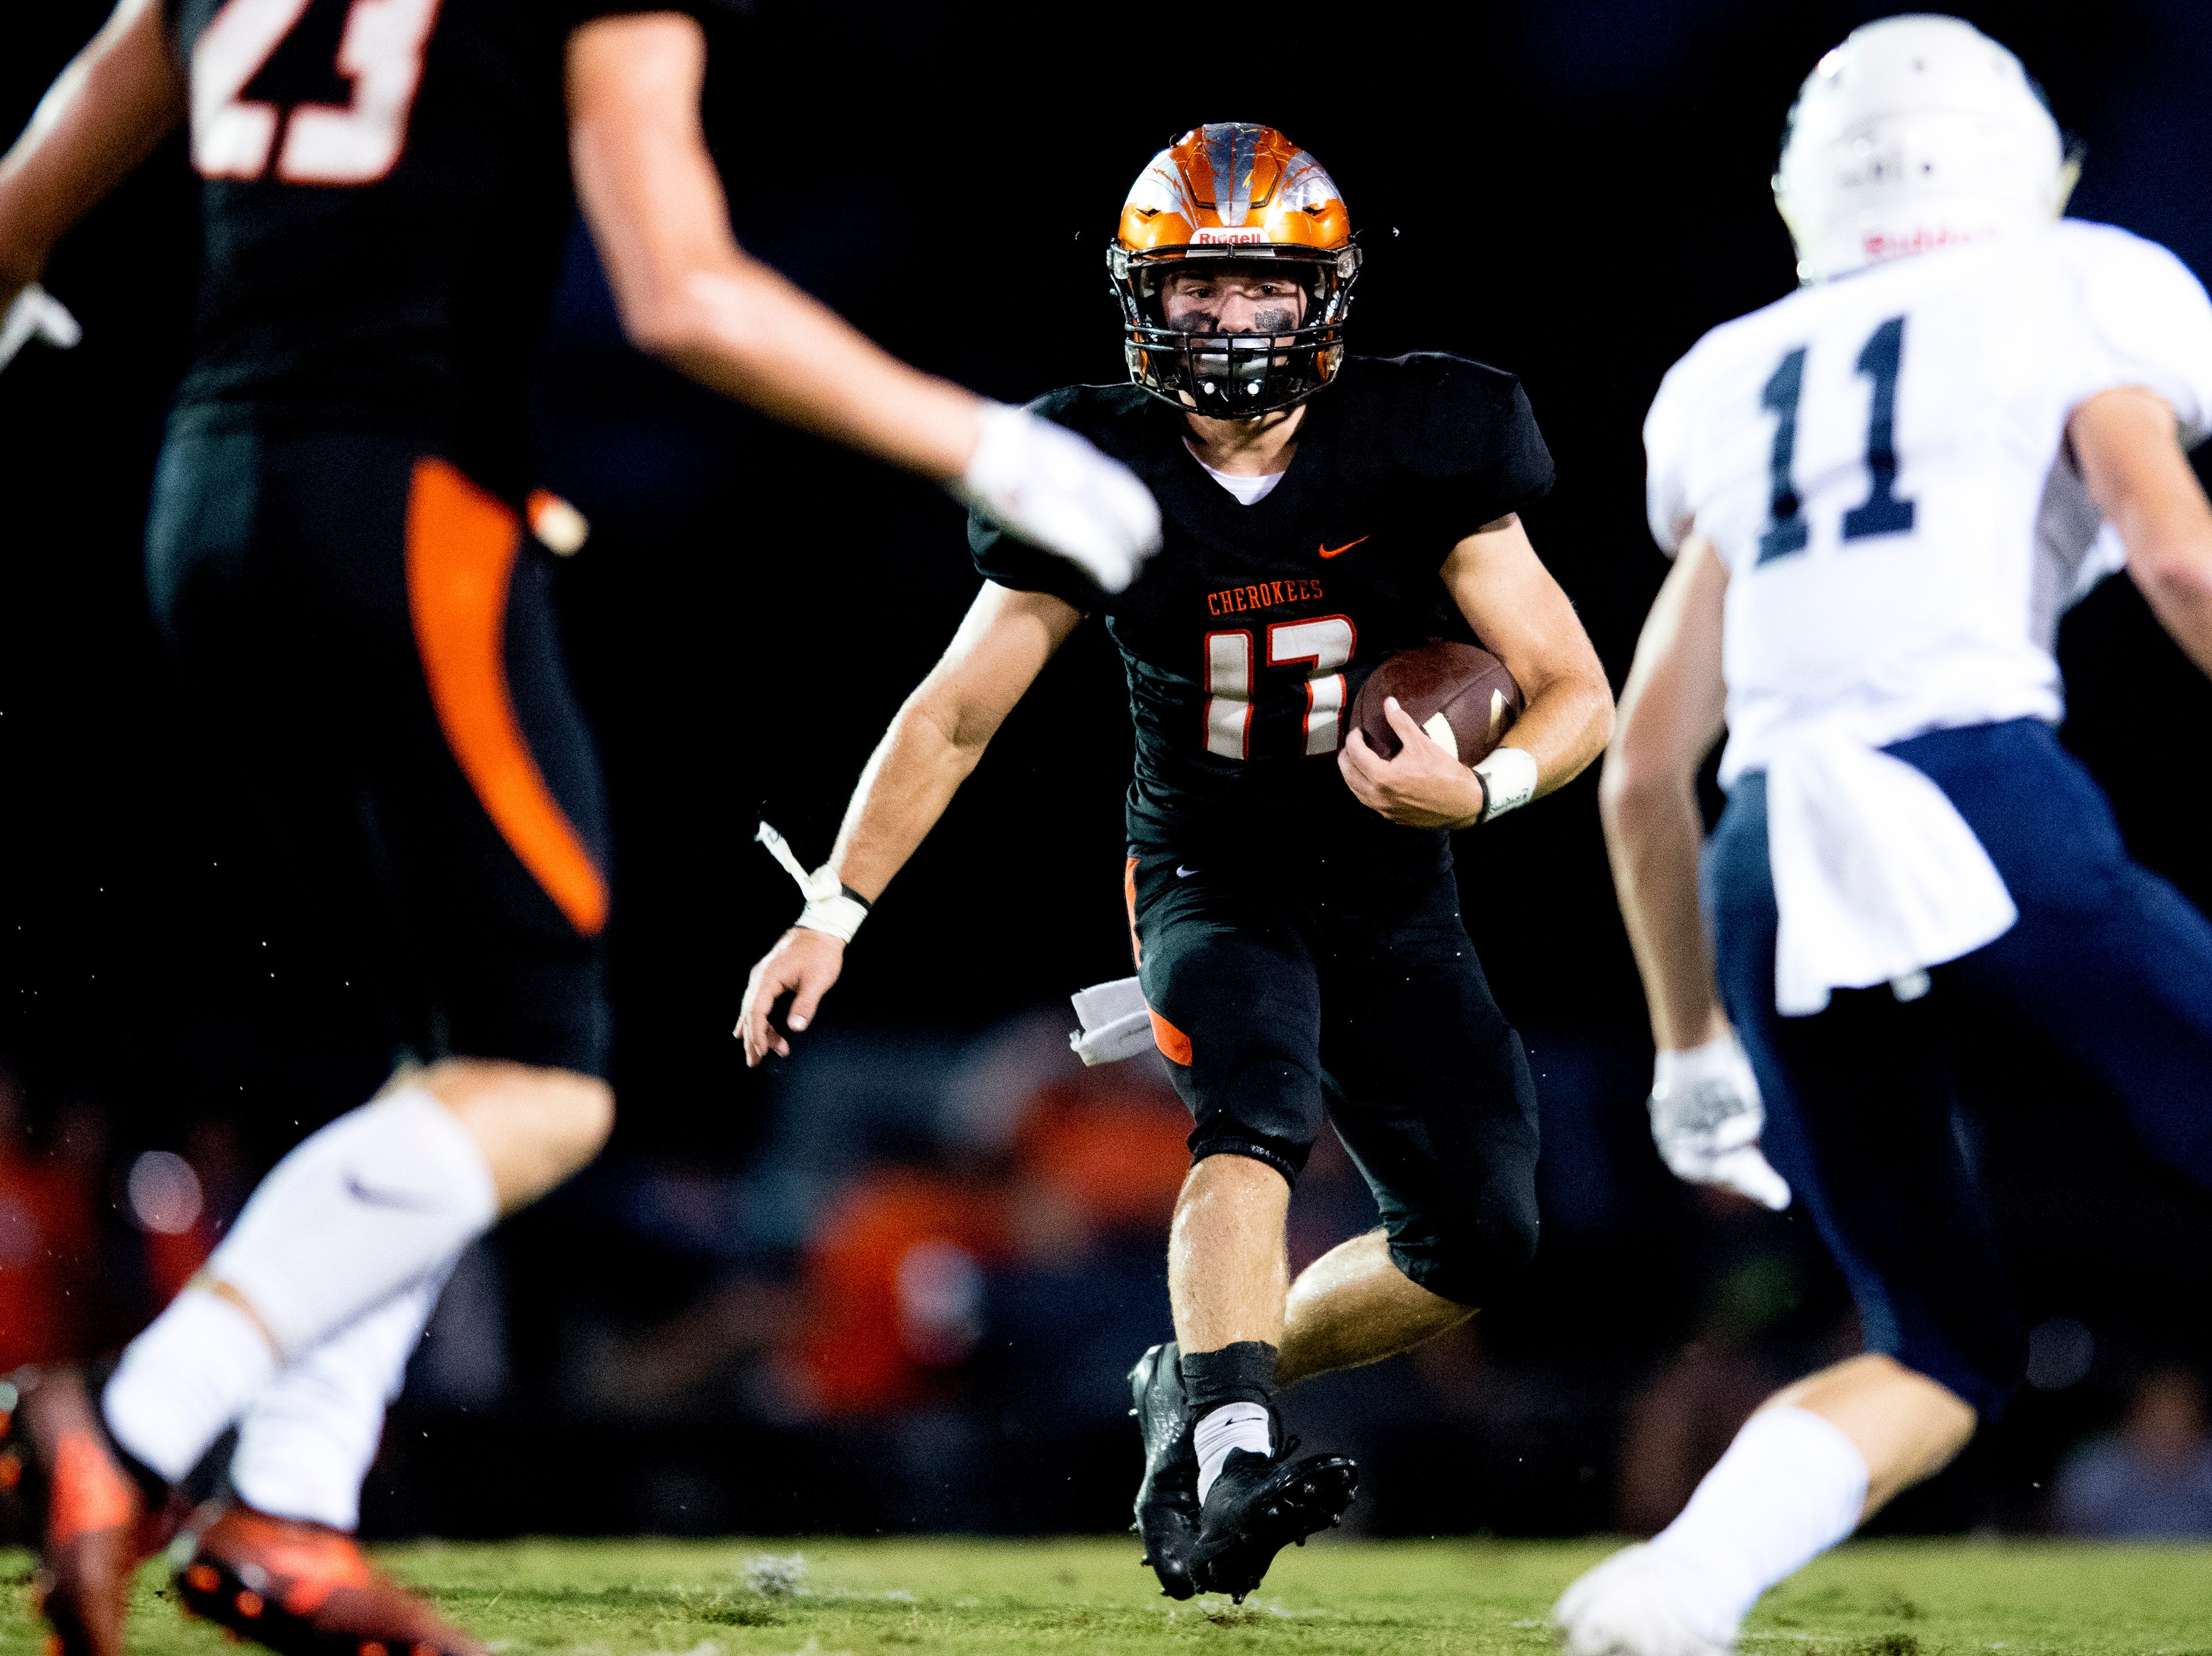 Greenback's Cole Riddle (17) runs with the ball during a football game between Greenback and Grace Christian at Greenback High School in Greenback, Tennessee on Thursday, September 20, 2018.